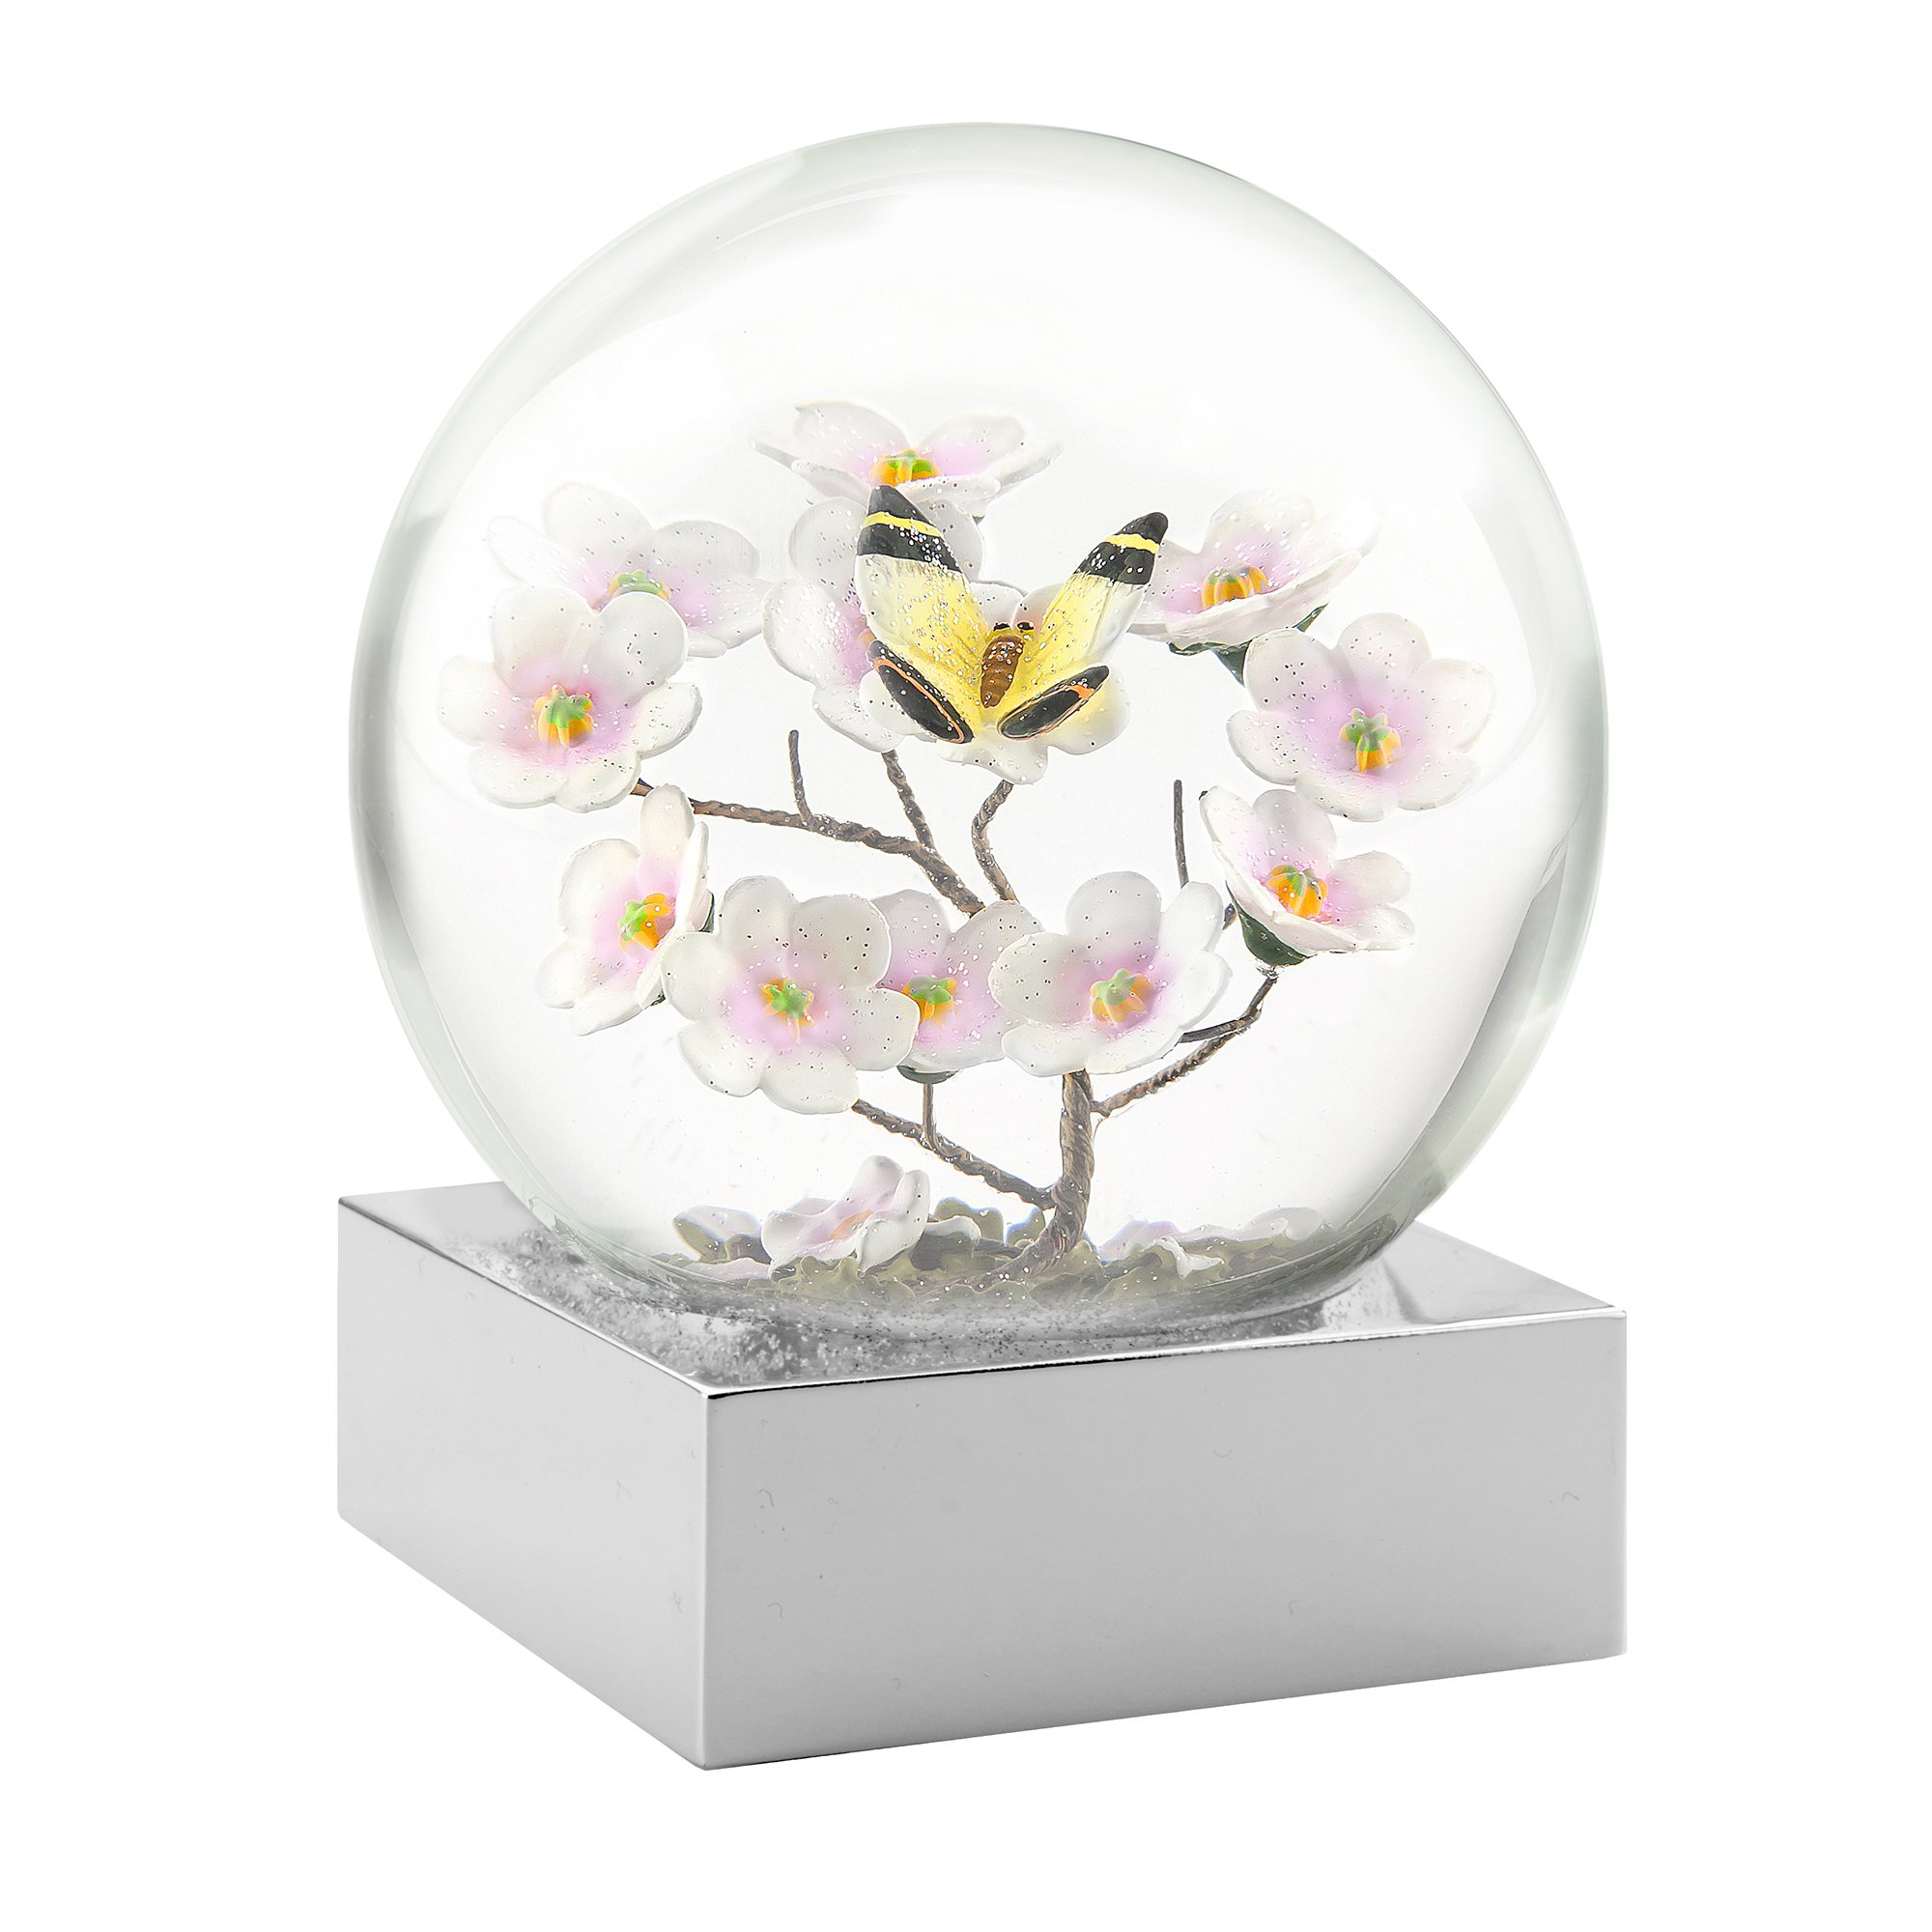 CoolSnowGlobes Butterfly on Branch Cool Snow Globe by CoolSnowGlobes